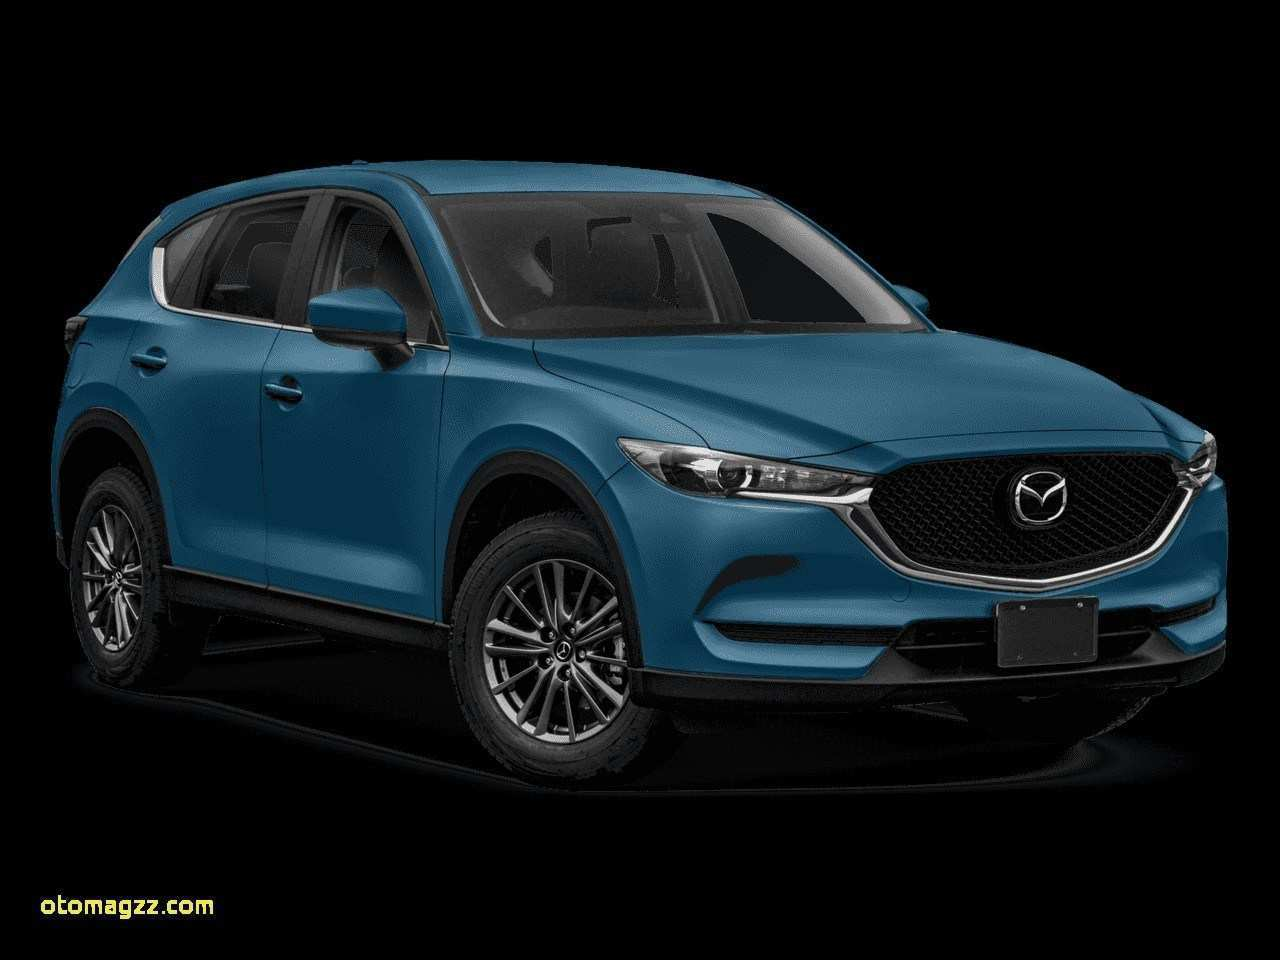 65 Great Mazdas New Engine For 2019 Review Specs And Release Date Redesign with Mazdas New Engine For 2019 Review Specs And Release Date